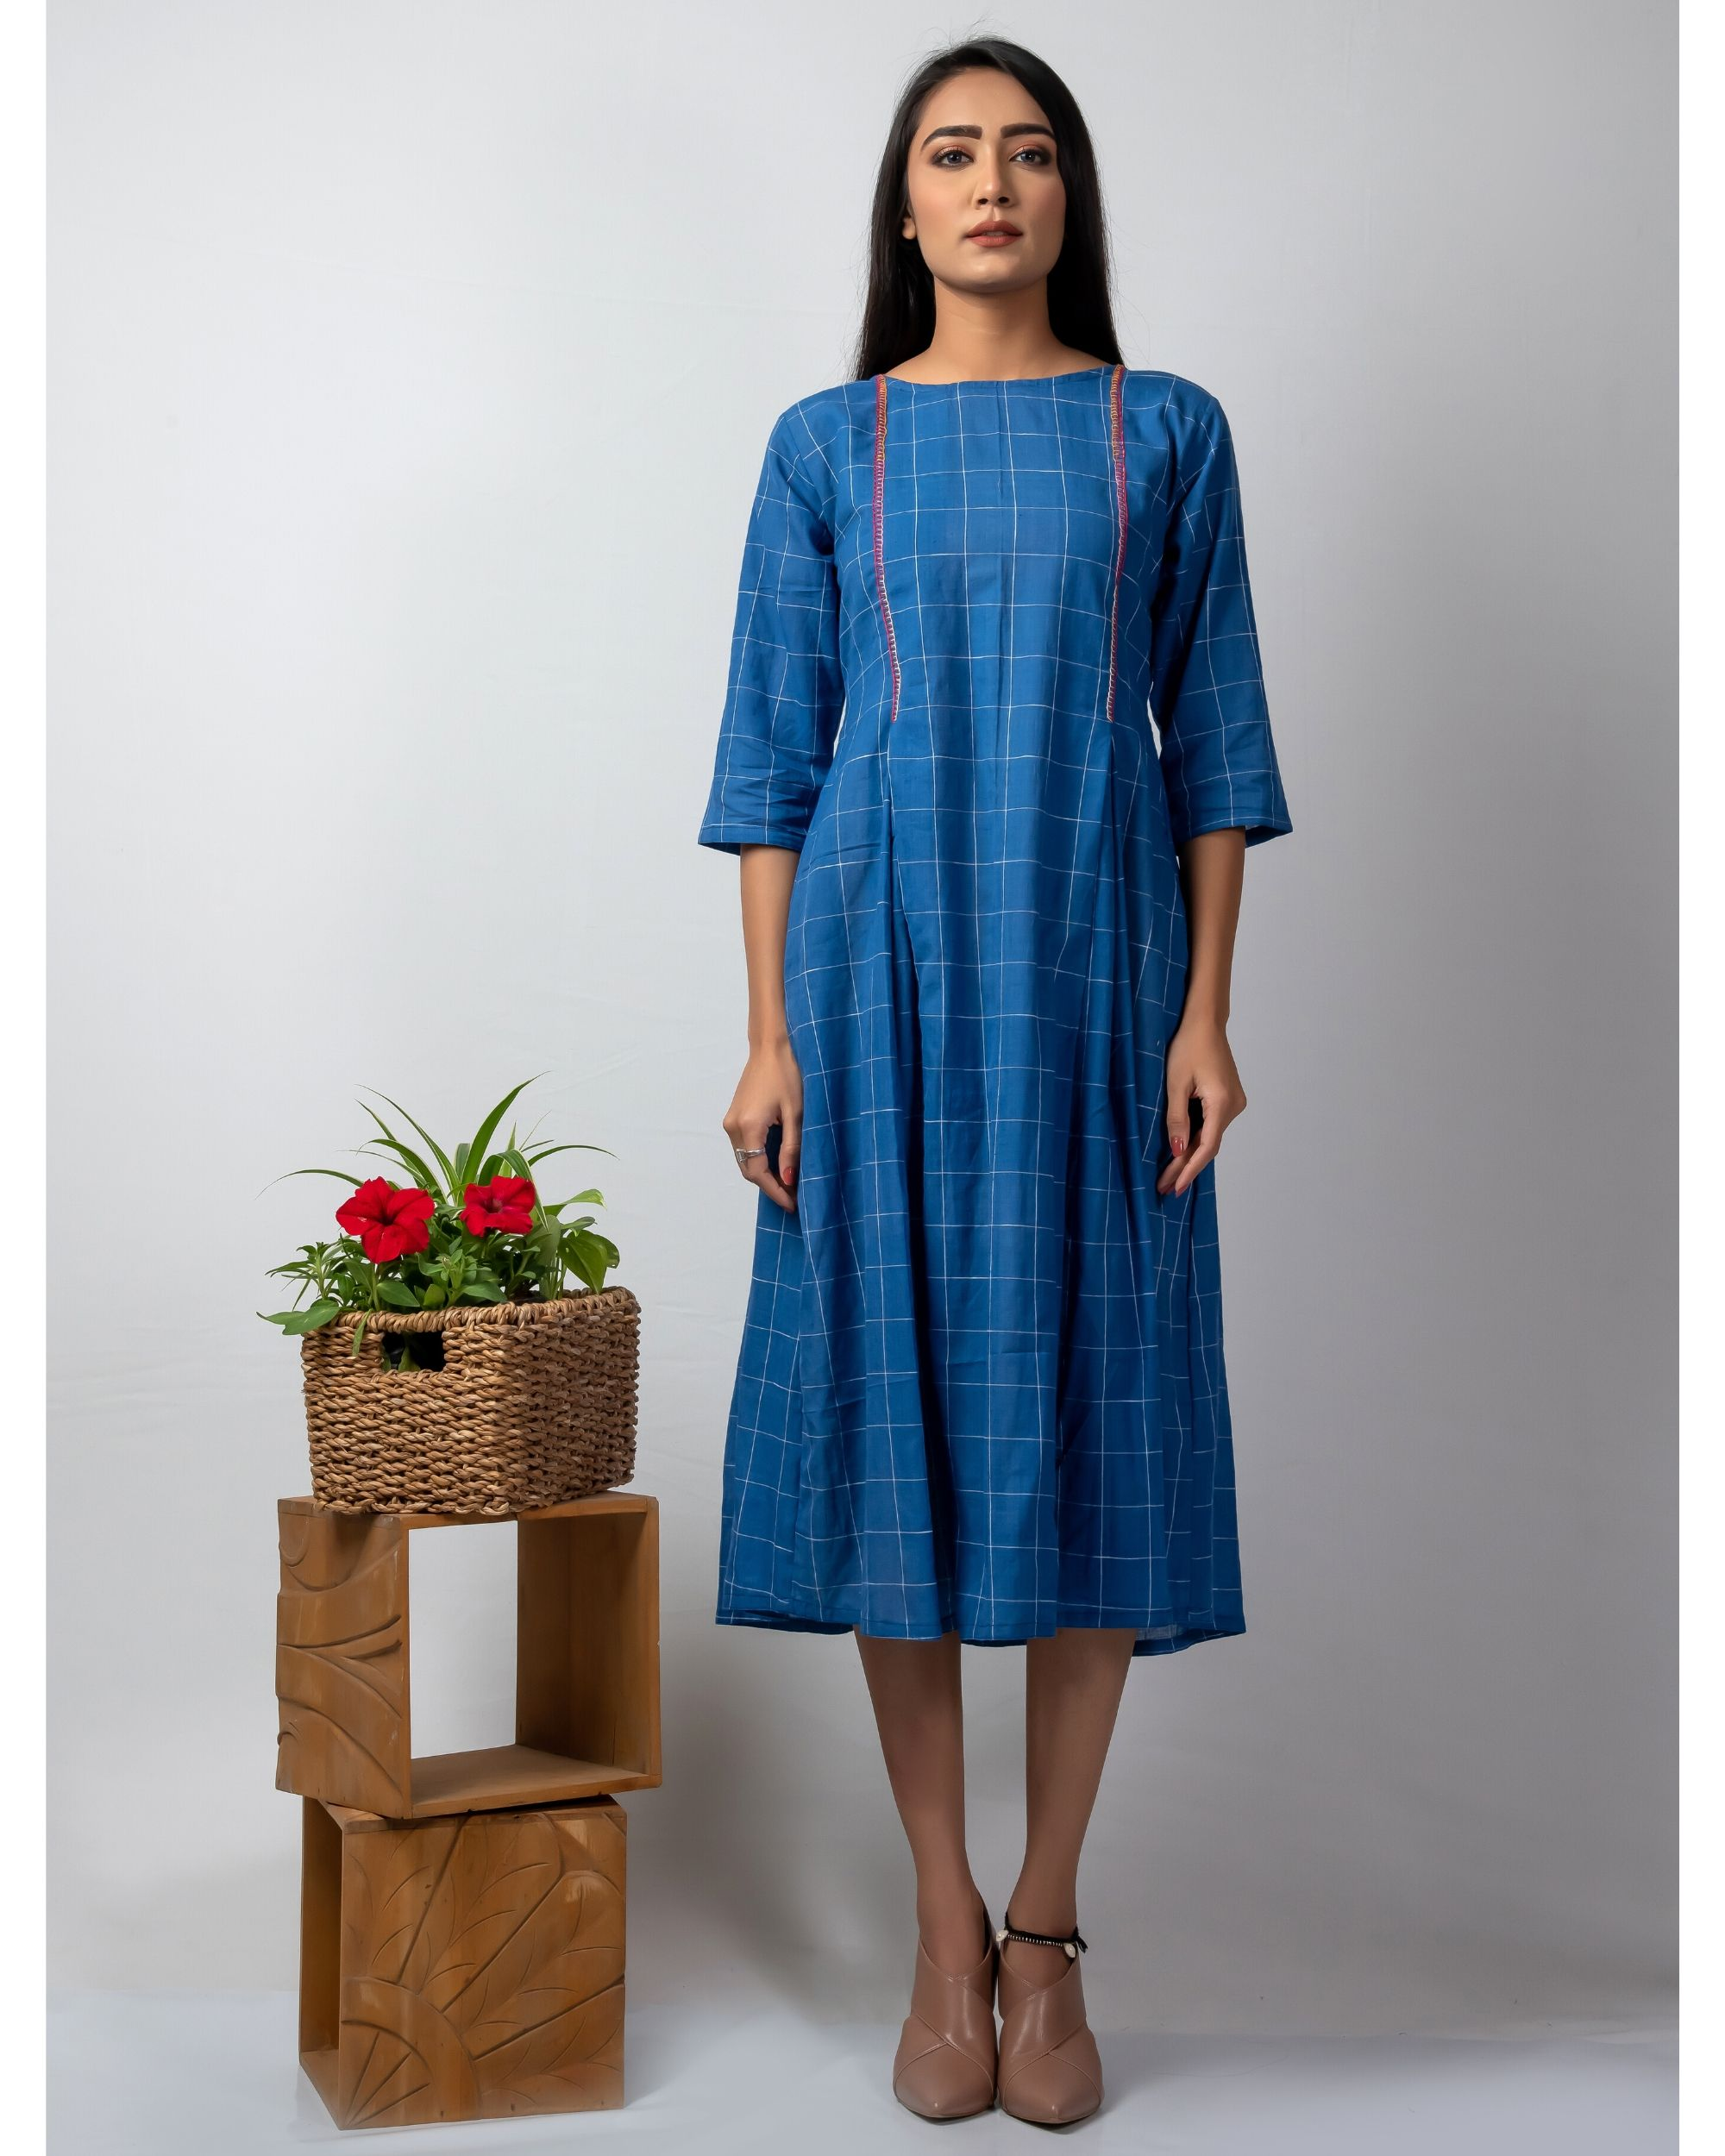 Blue checkered dress with embroidery